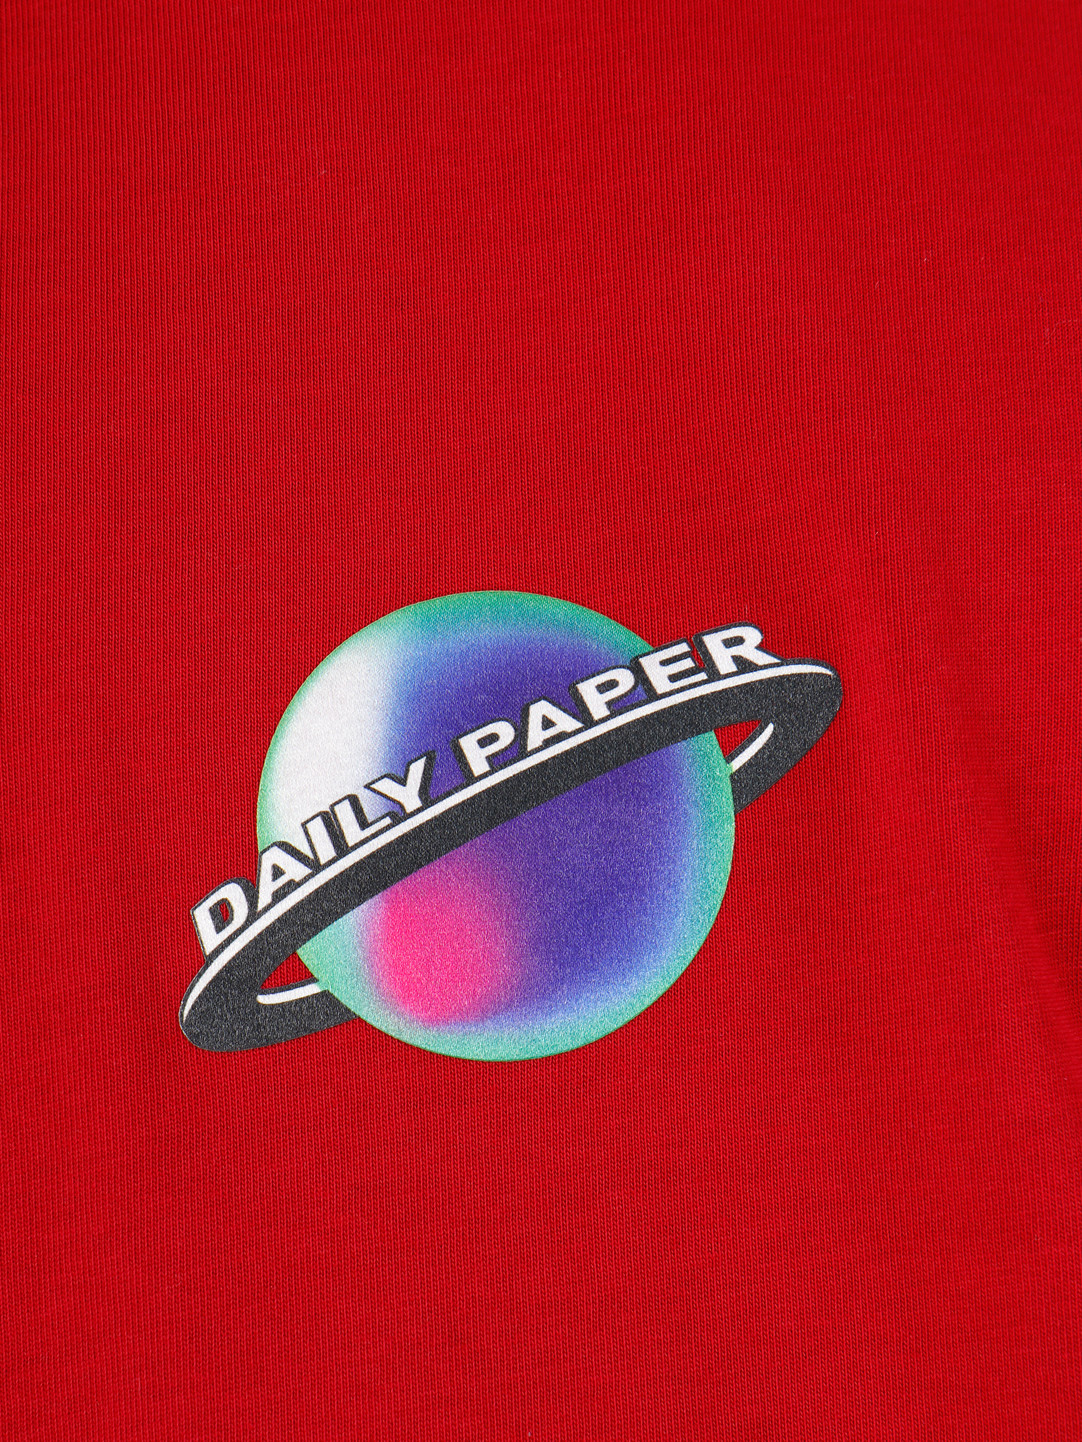 Daily Paper Daily Paper Genrio T-Shirt Rio Red 19F1TS21-01